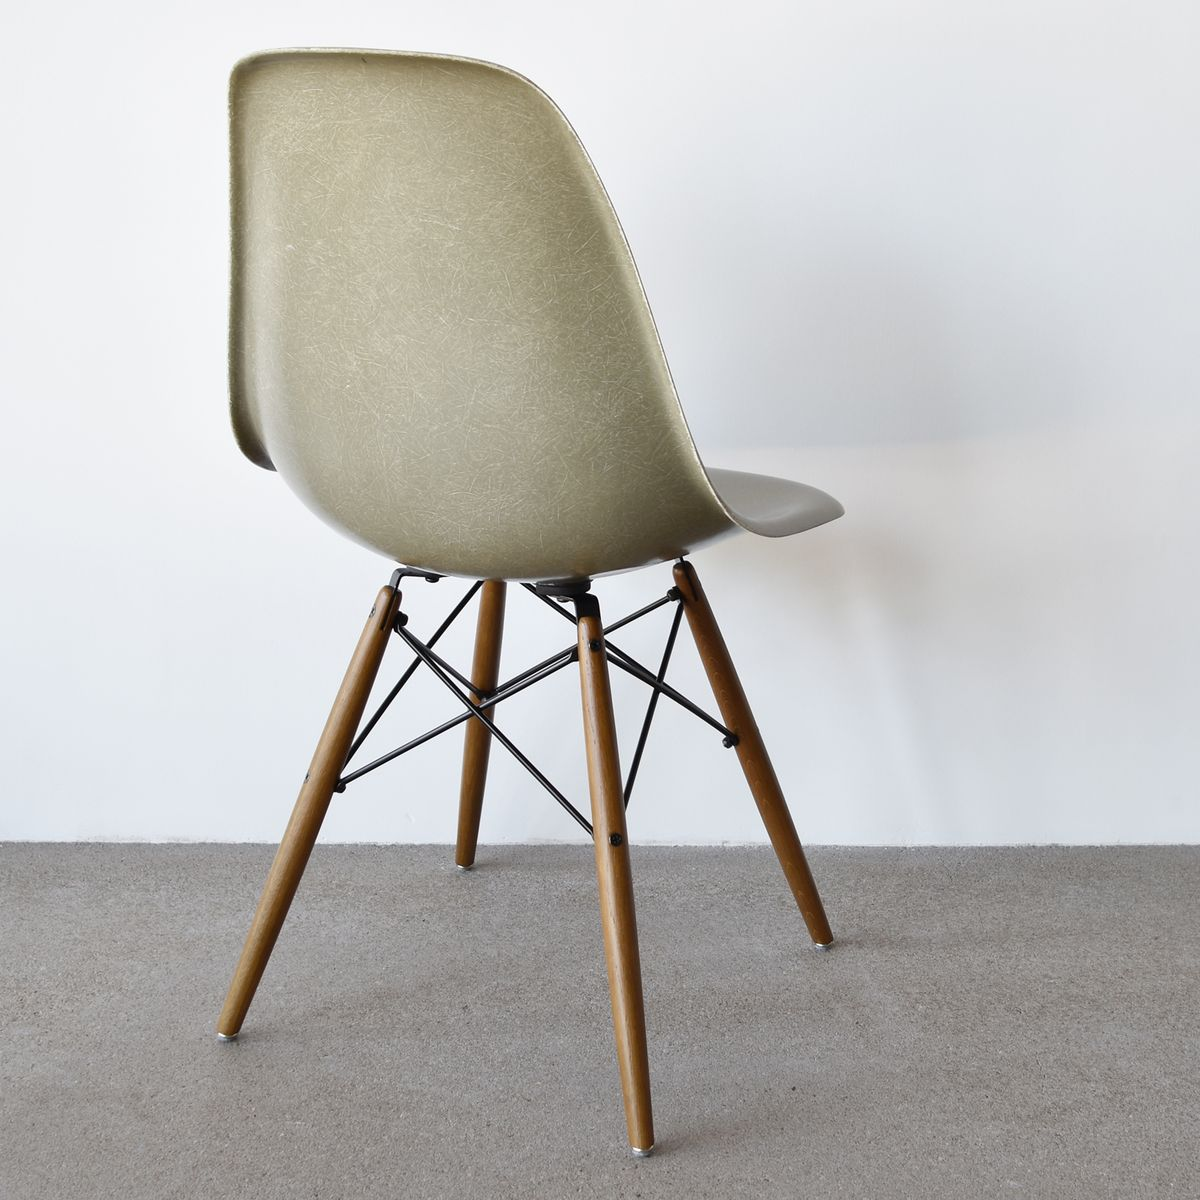 Dsw chair in raw umber by charles and ray eames for herman for Inspiration dsw de charles ray eames